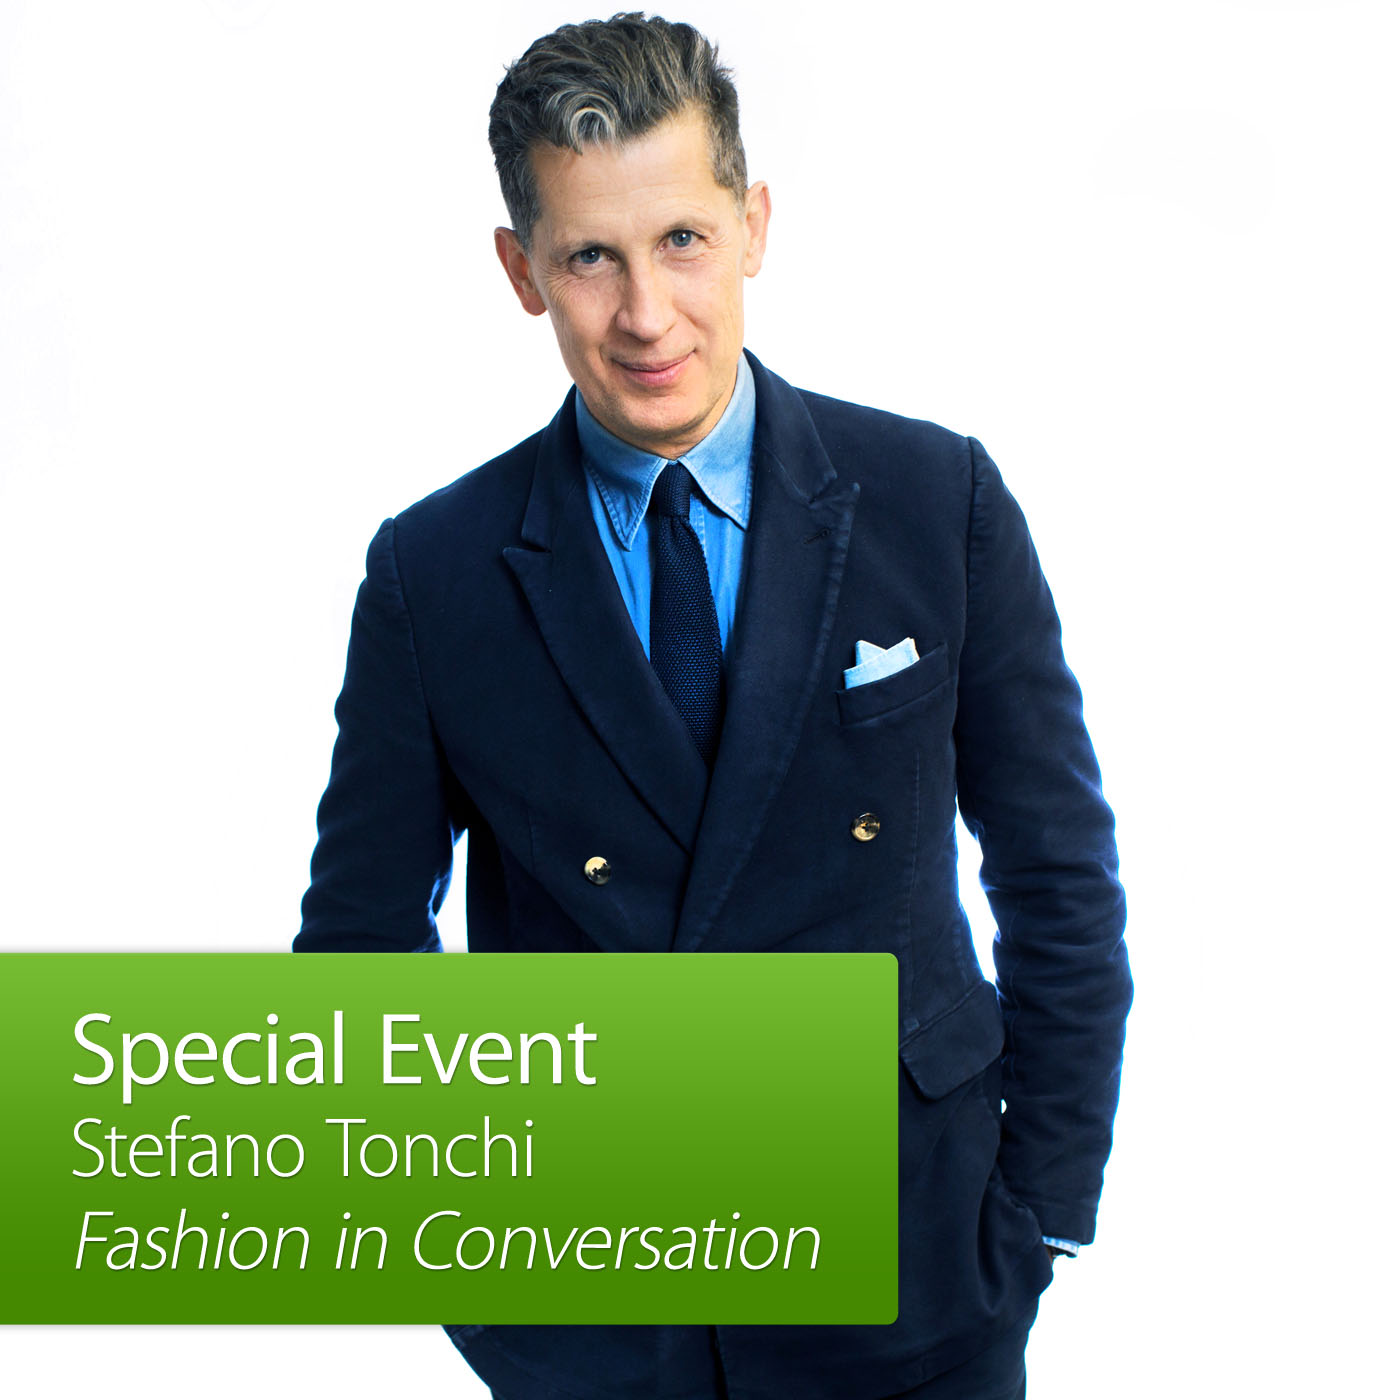 Stefano Tonchi: Fashion in Conversation